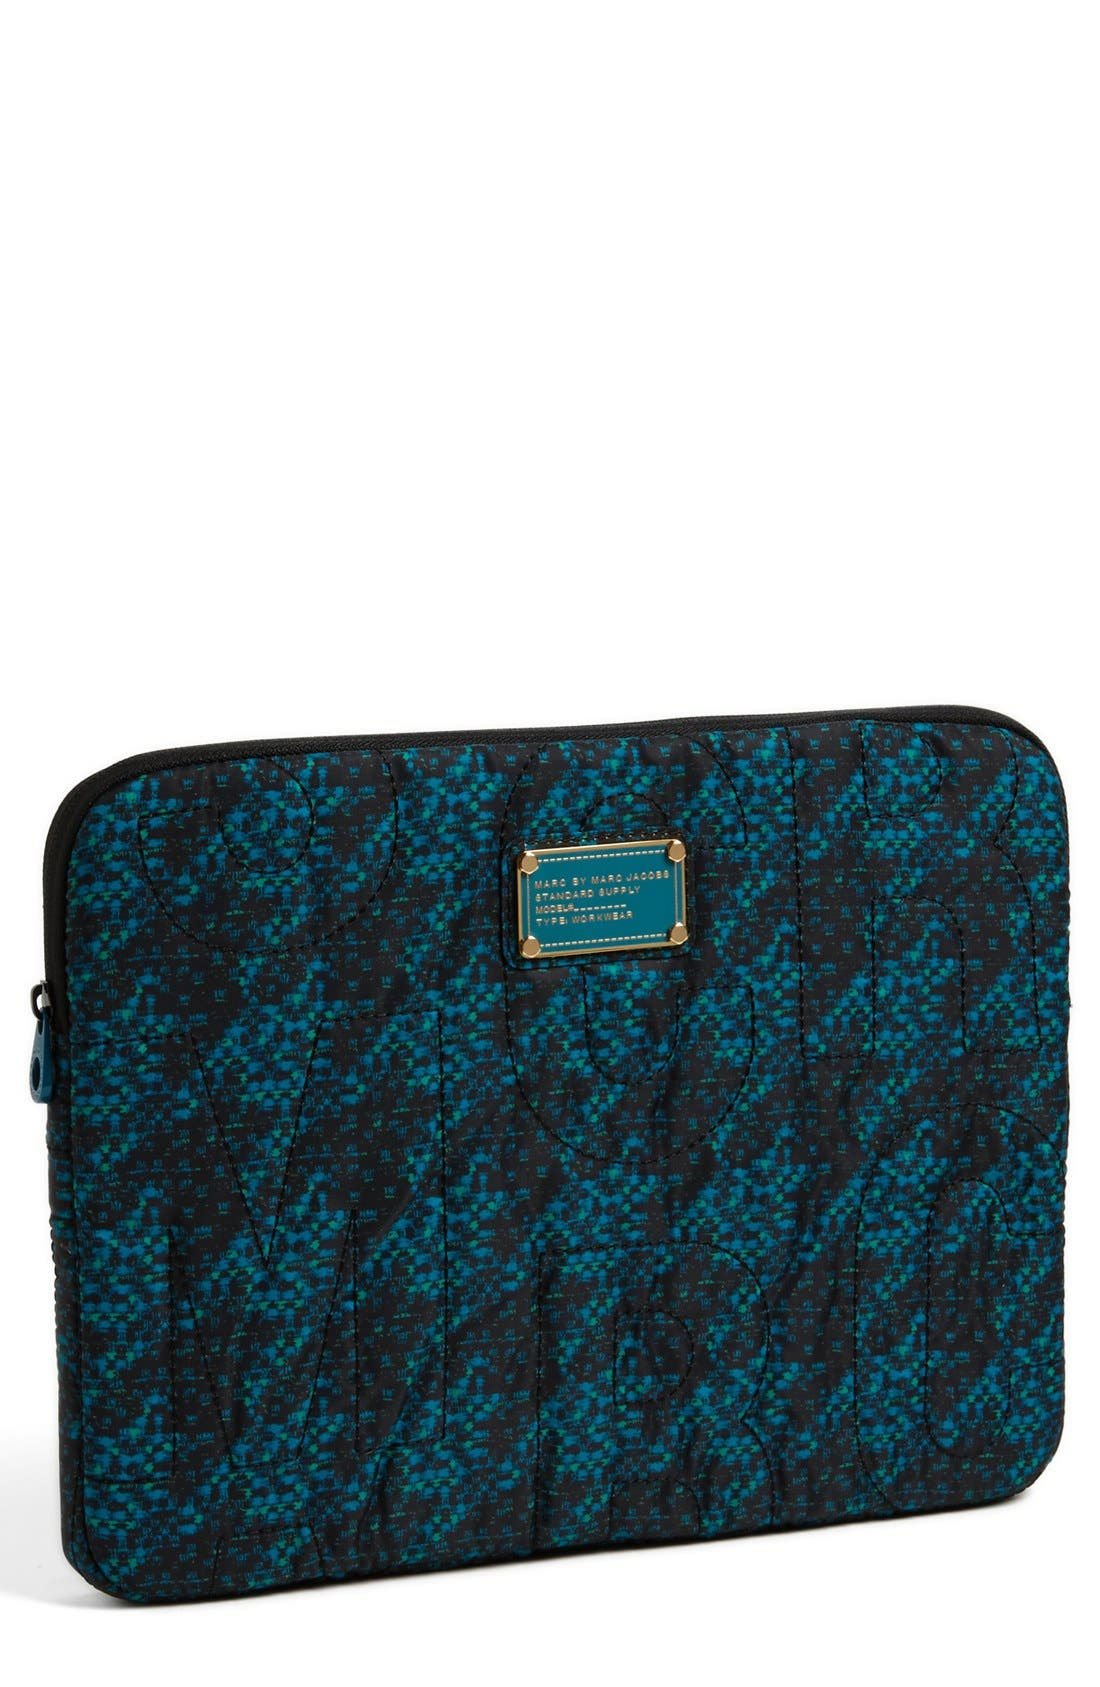 Main Image - MARC BY MARC JACOBS Zip Up Laptop Sleeve (13 Inch)